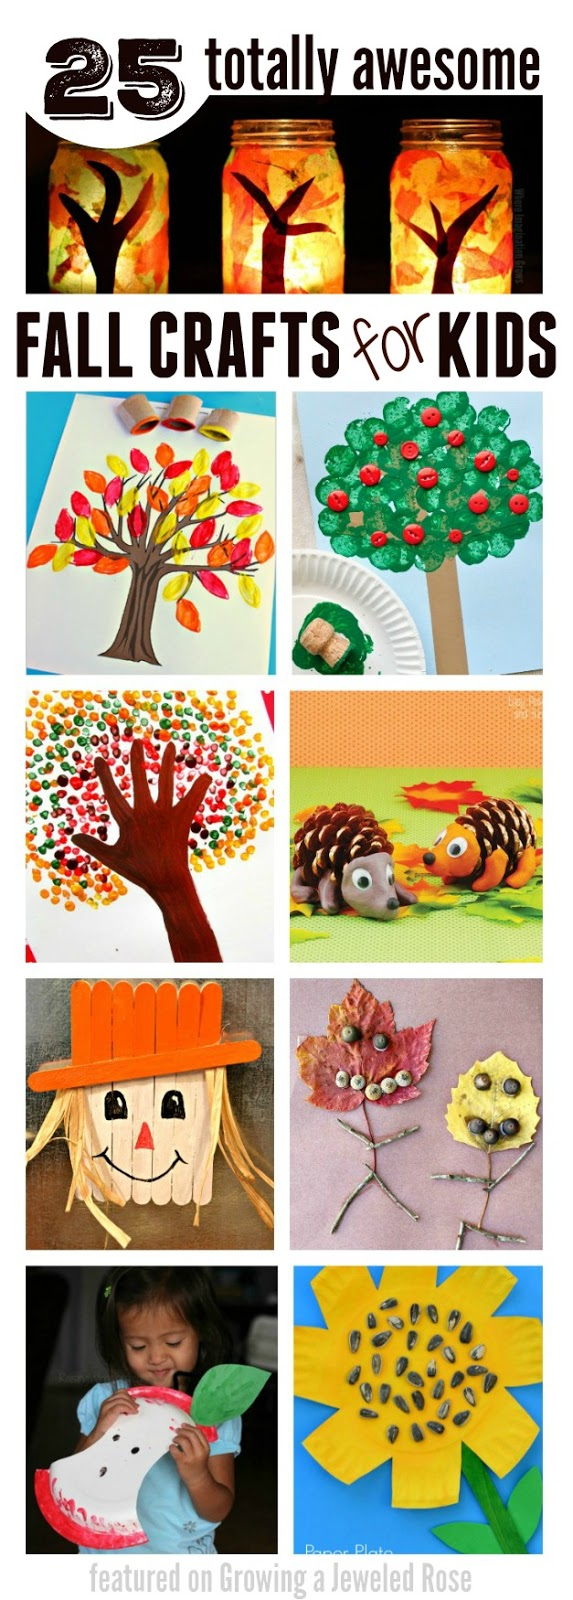 25 totally awesome Fall crafts for kids- I love these ideas!